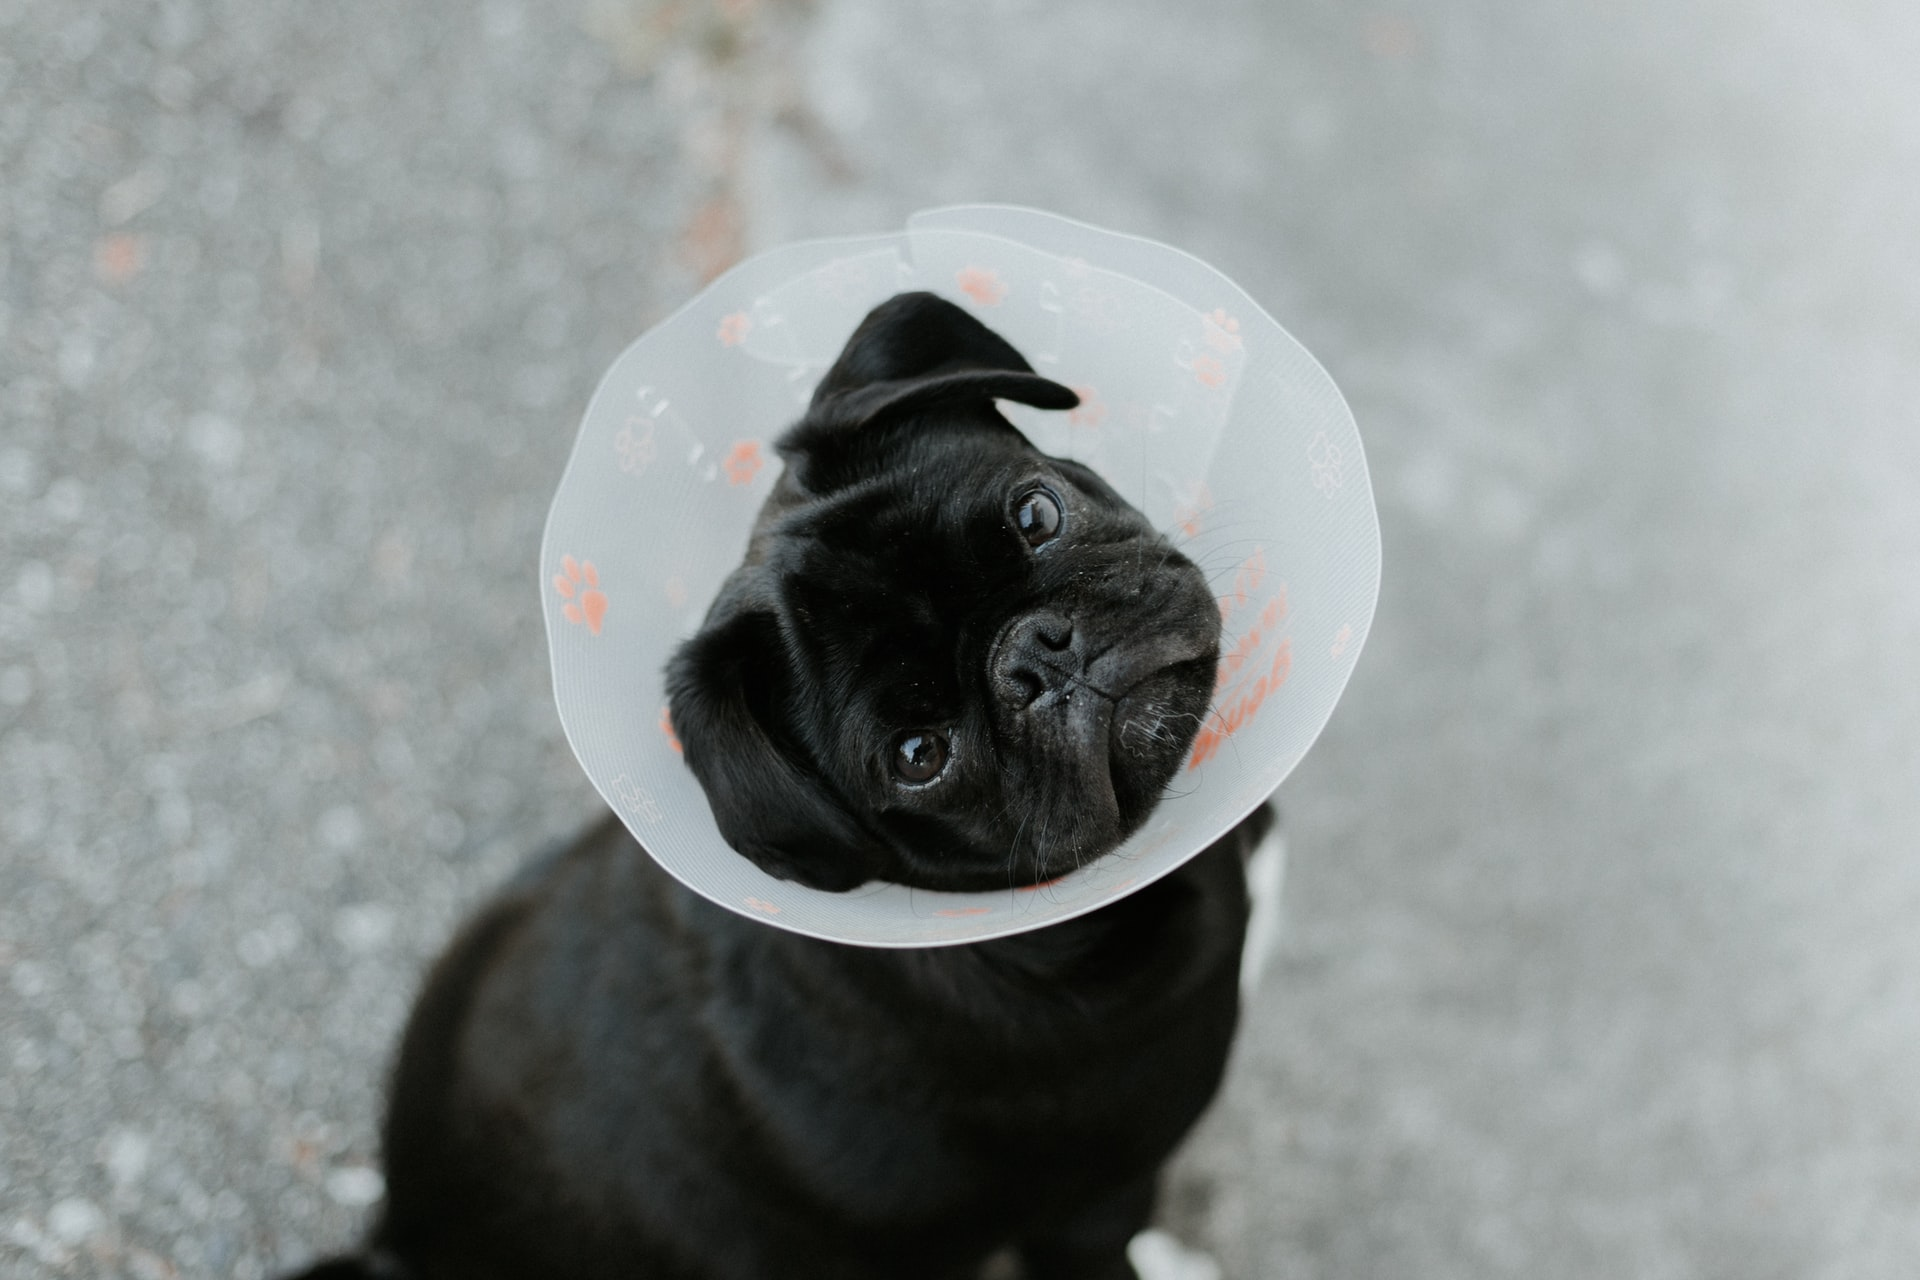 Veterinary - Dog with cone